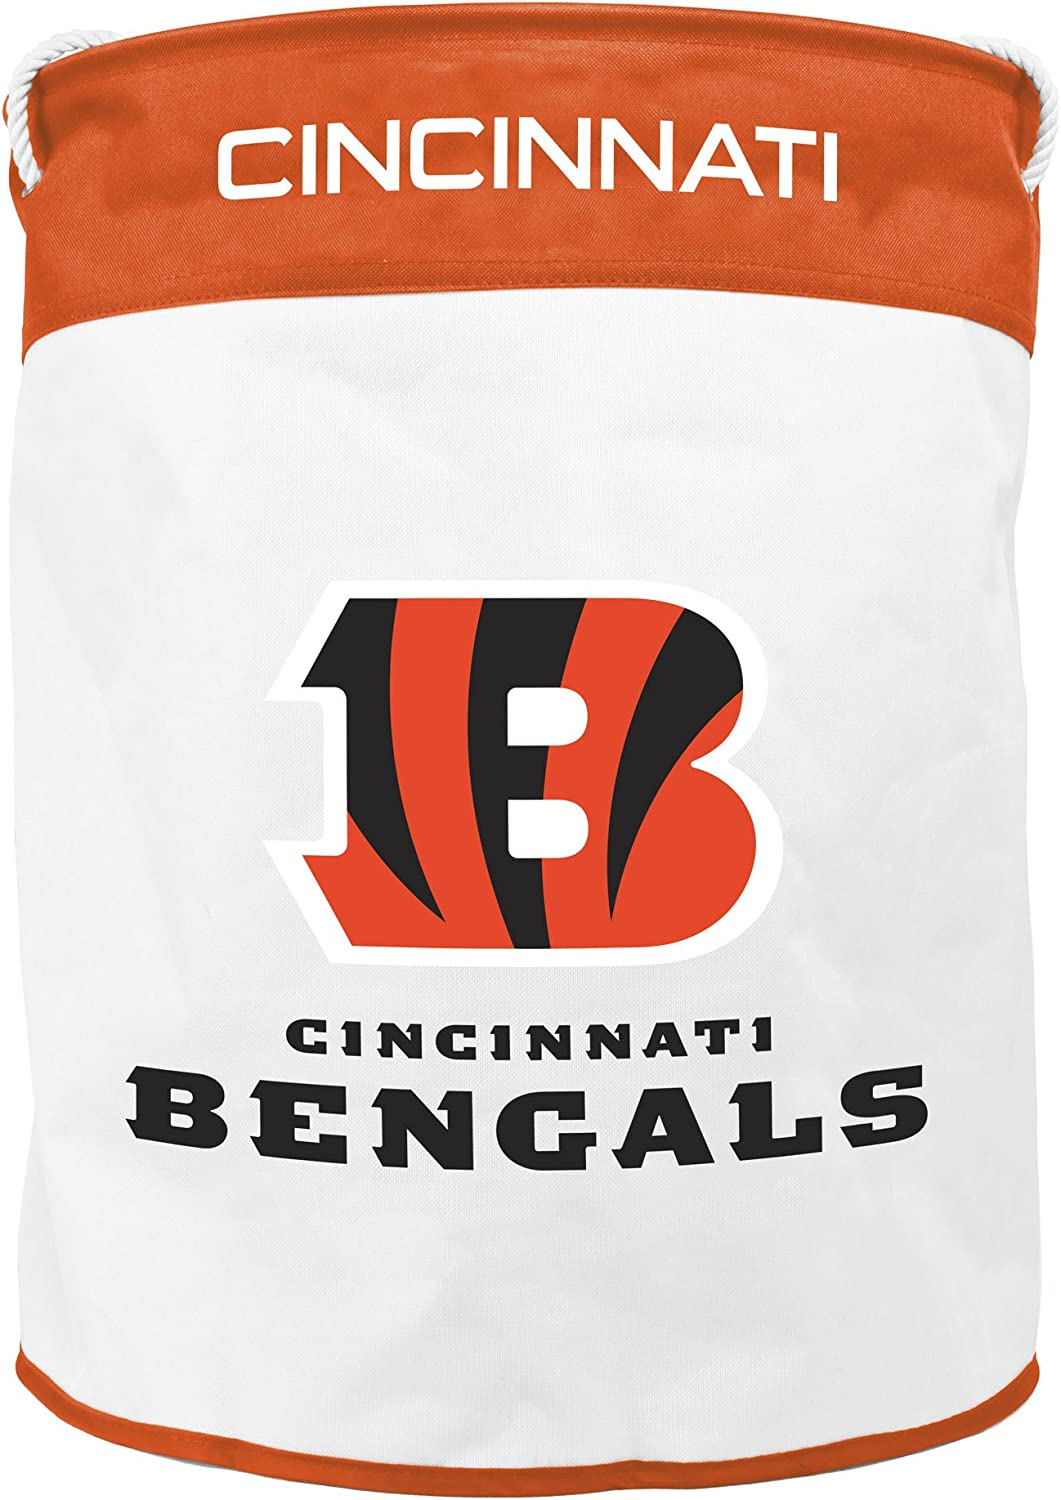 NFL Cincinnati Bengals Canvas Laundry Basket with Braided Rope Handles